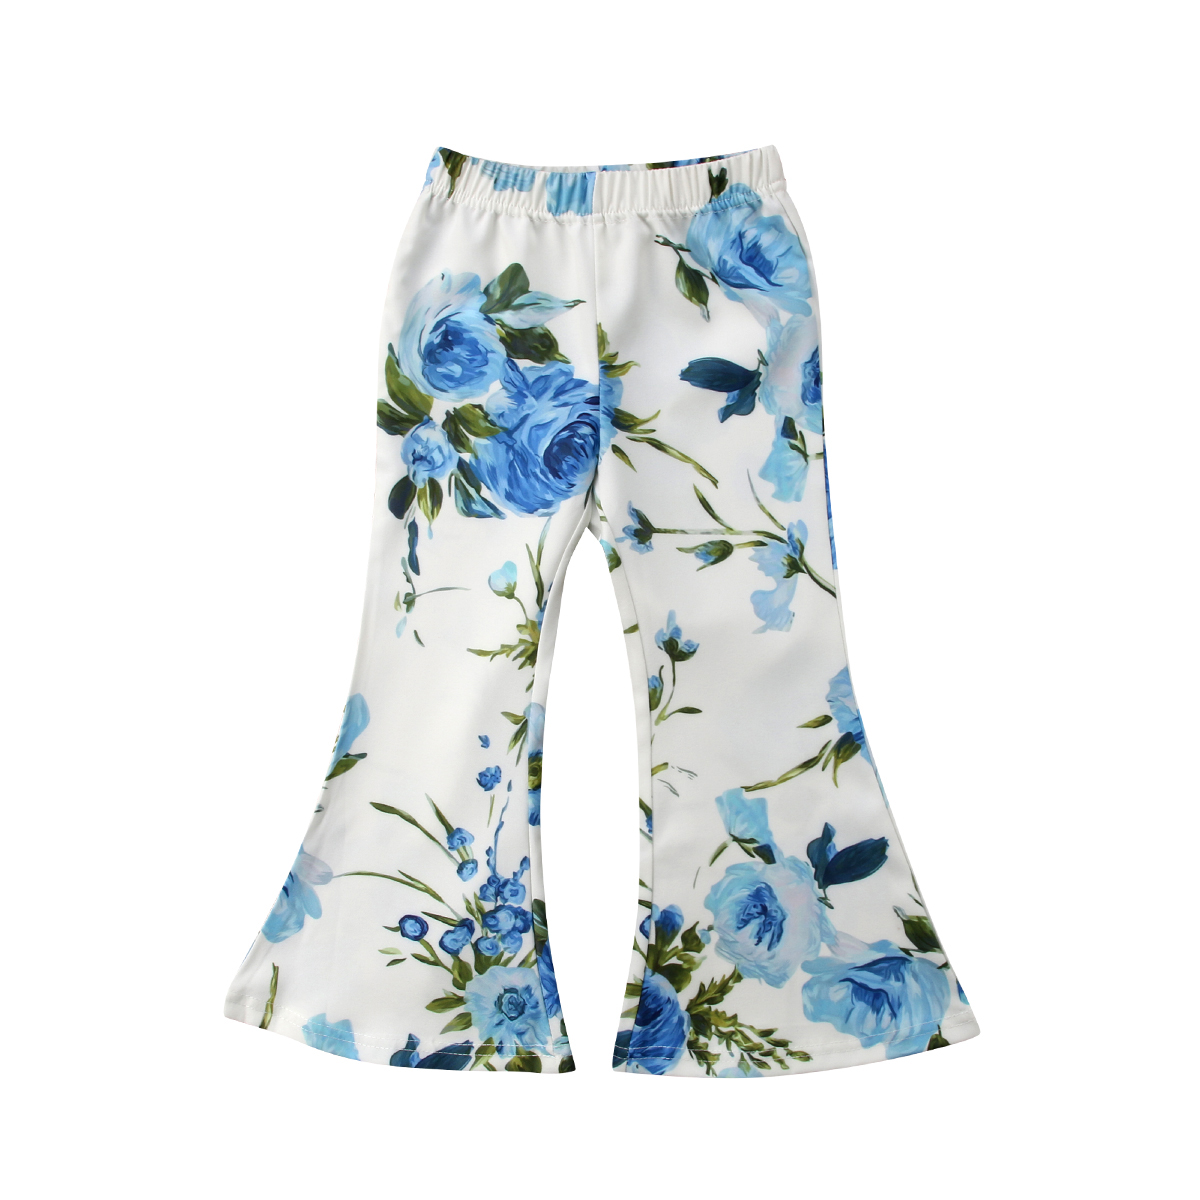 Kids Baby Cute Girls Blue Color Print With Flowers Boot Cut Newest Style Loose Fashion Flare Pants 2-7Y